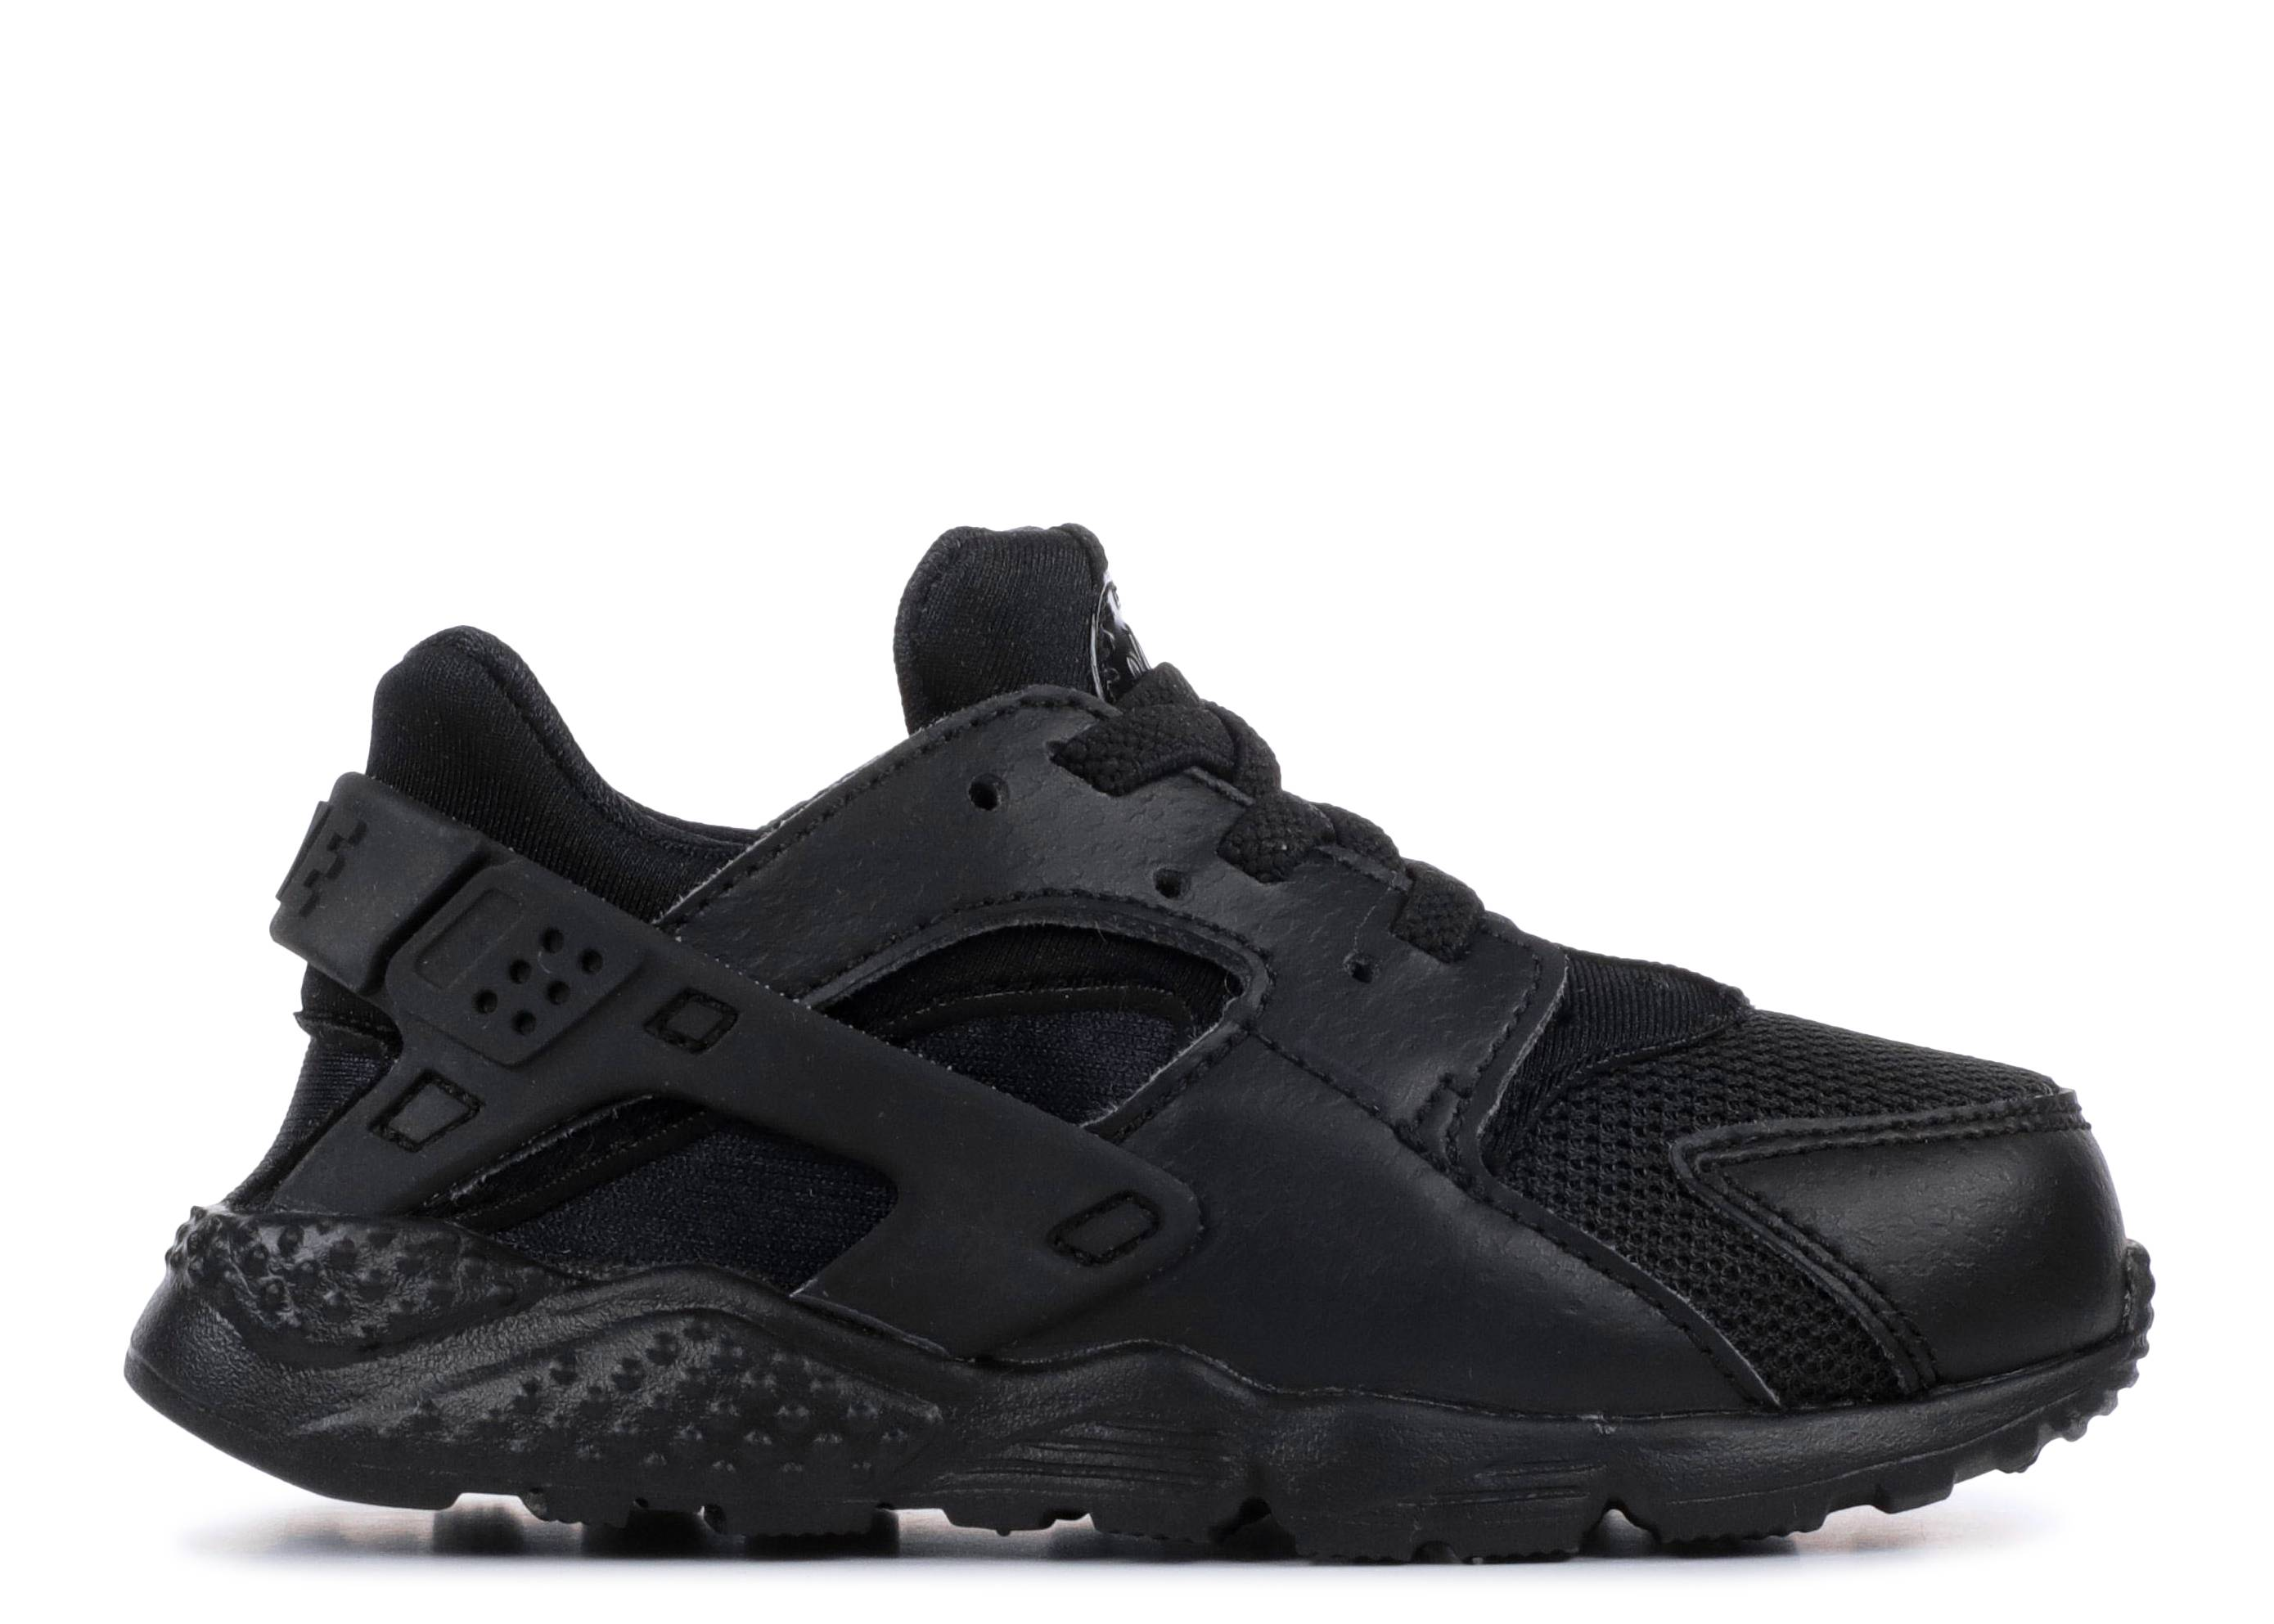 2138249e94860 closeout nike kids huarache run gs black black black youth size 5.5 d40e5  74c45  discount code for nike huaraches shoes for women men flight club  46af6 ...